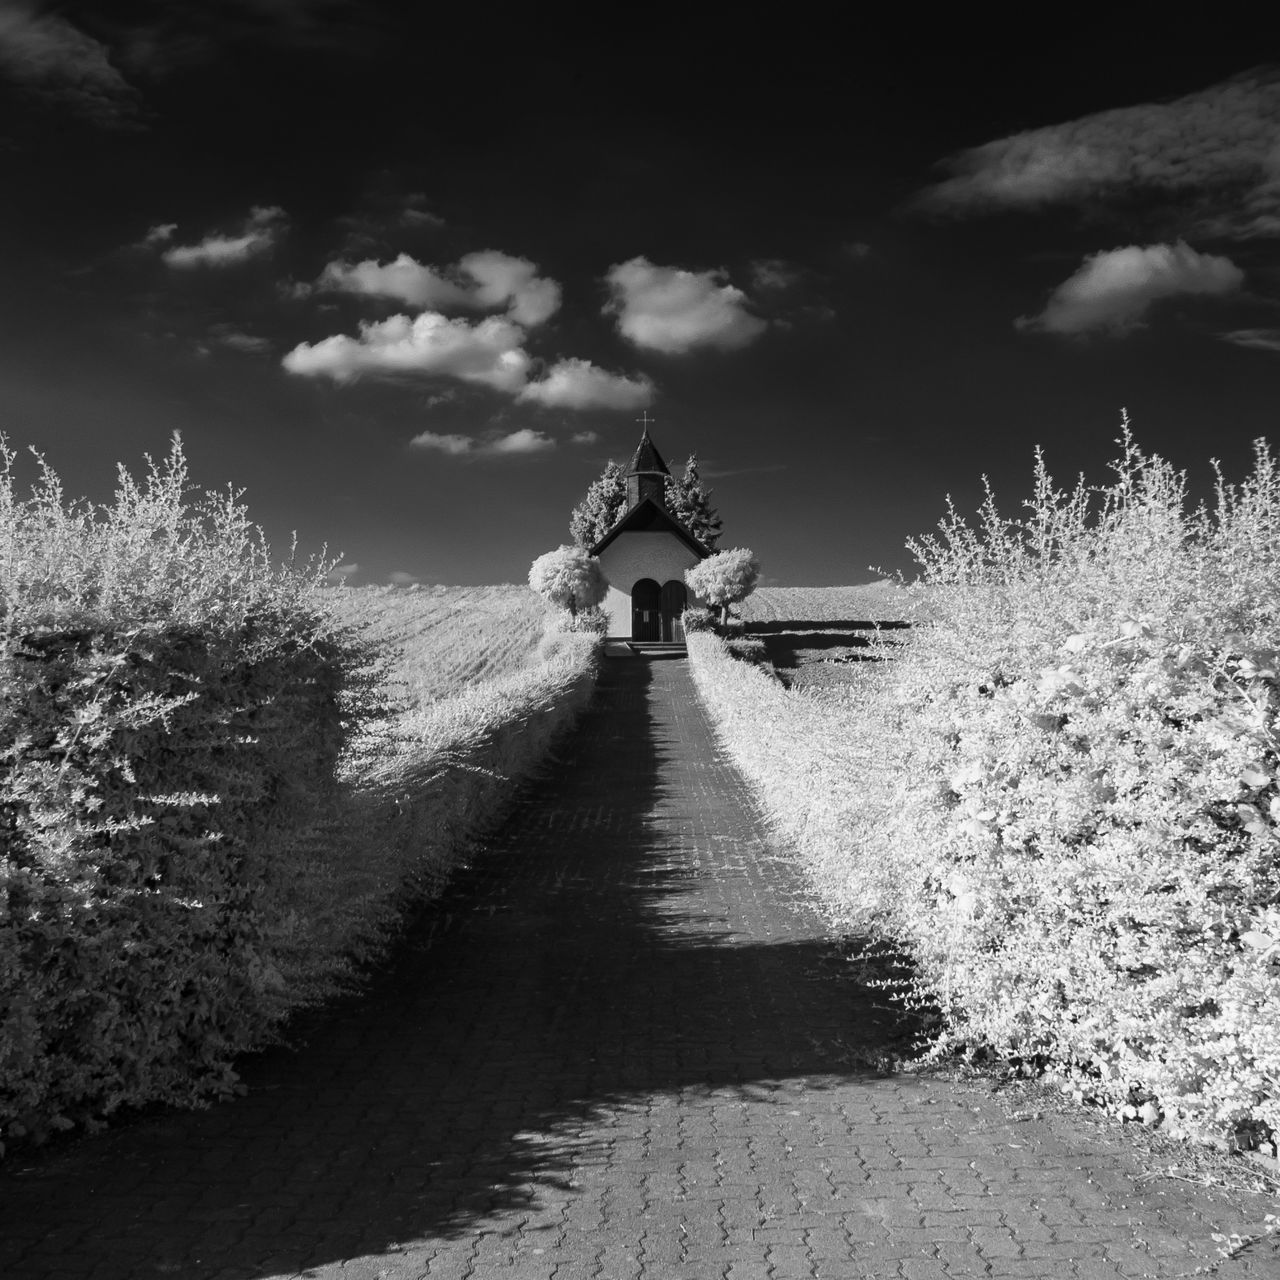 infraChapel Beauty In Nature Chapel Cloud - Sky Day Full Length Infrared Photography Nature One Person Outdoors People Real People Sky The Way Forward Tree Walking